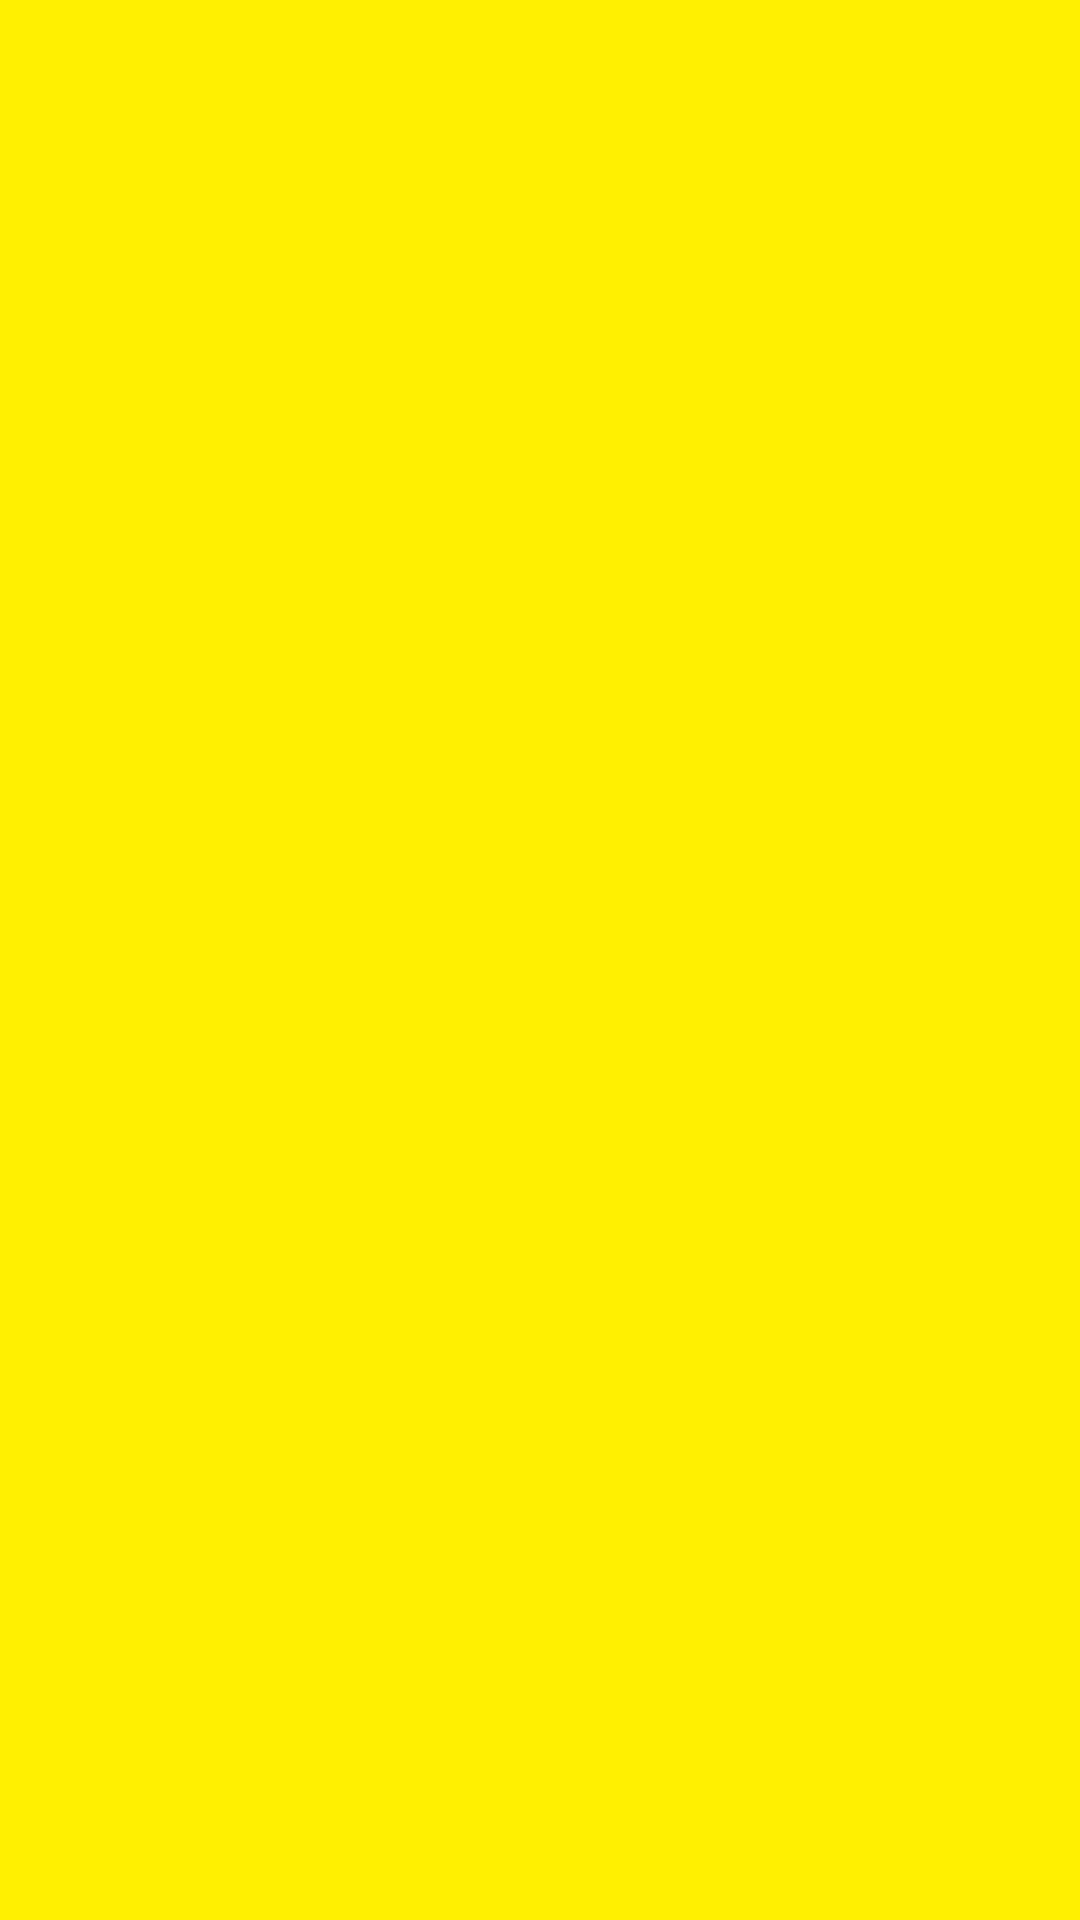 1080x1920 Yellow Process Solid Color Background